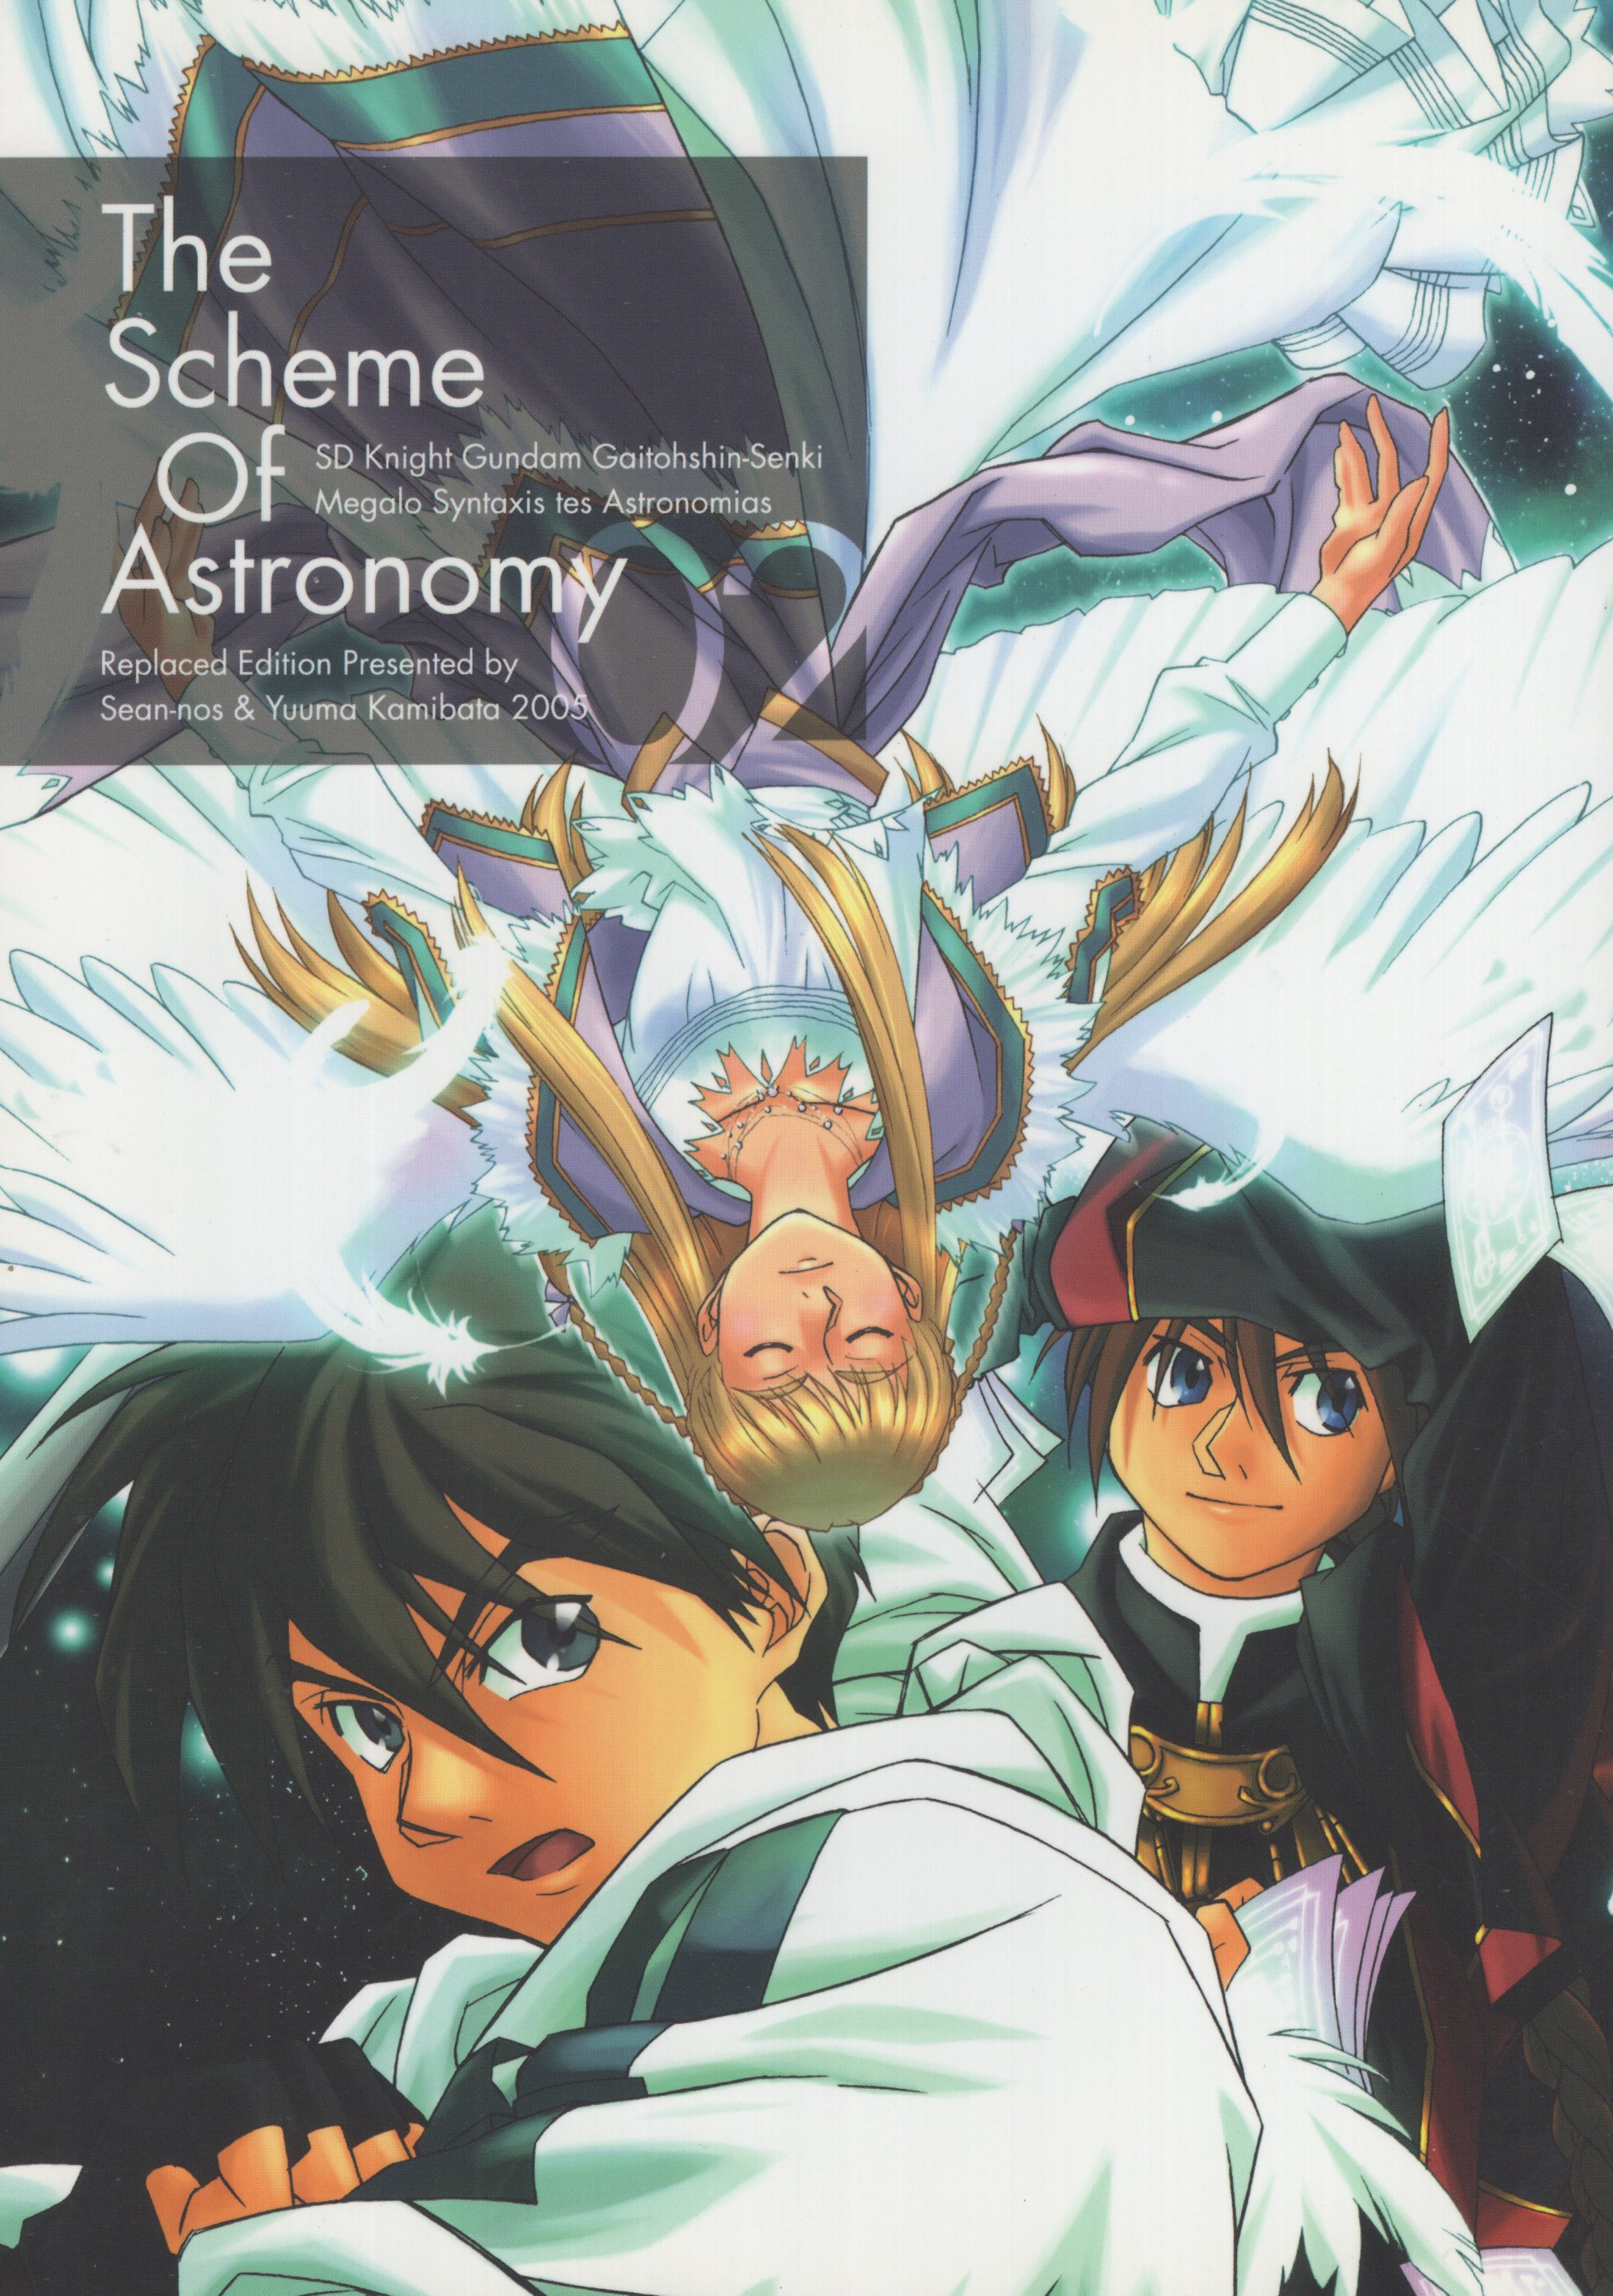 Doujinshi - Mobile Suit Gundam Wing / Heero Yuy x Duo Maxwell (The Scheme Of Astronomy 2) / Sean-nos